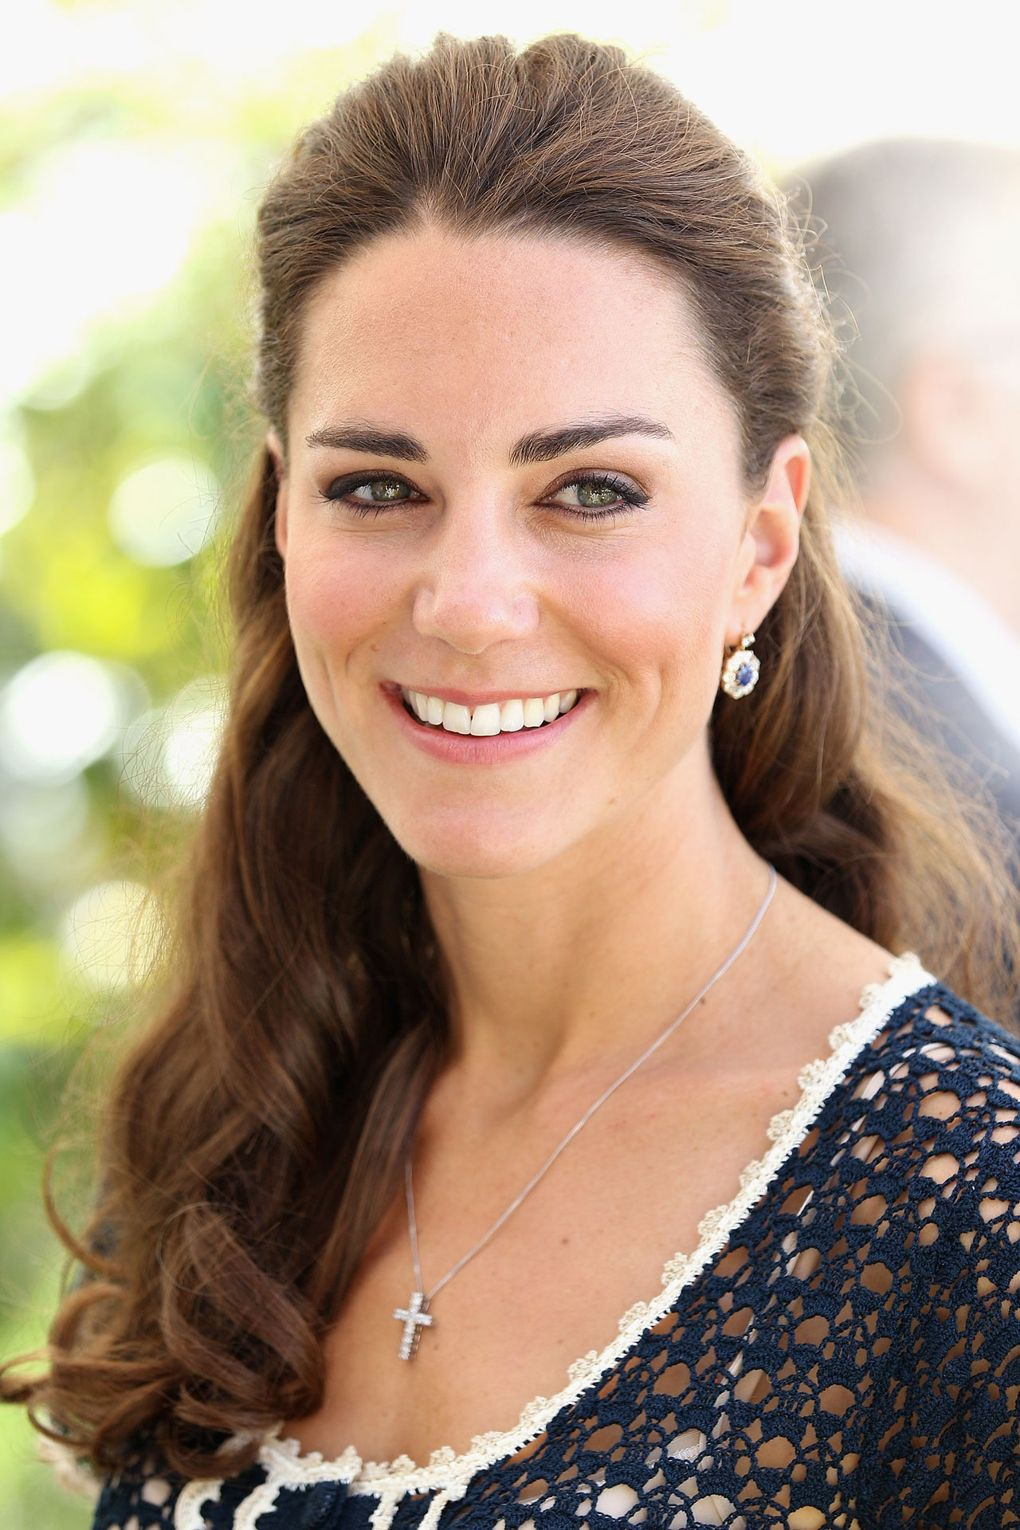 duchess-cambridge-19_v_8jun12_rex_b